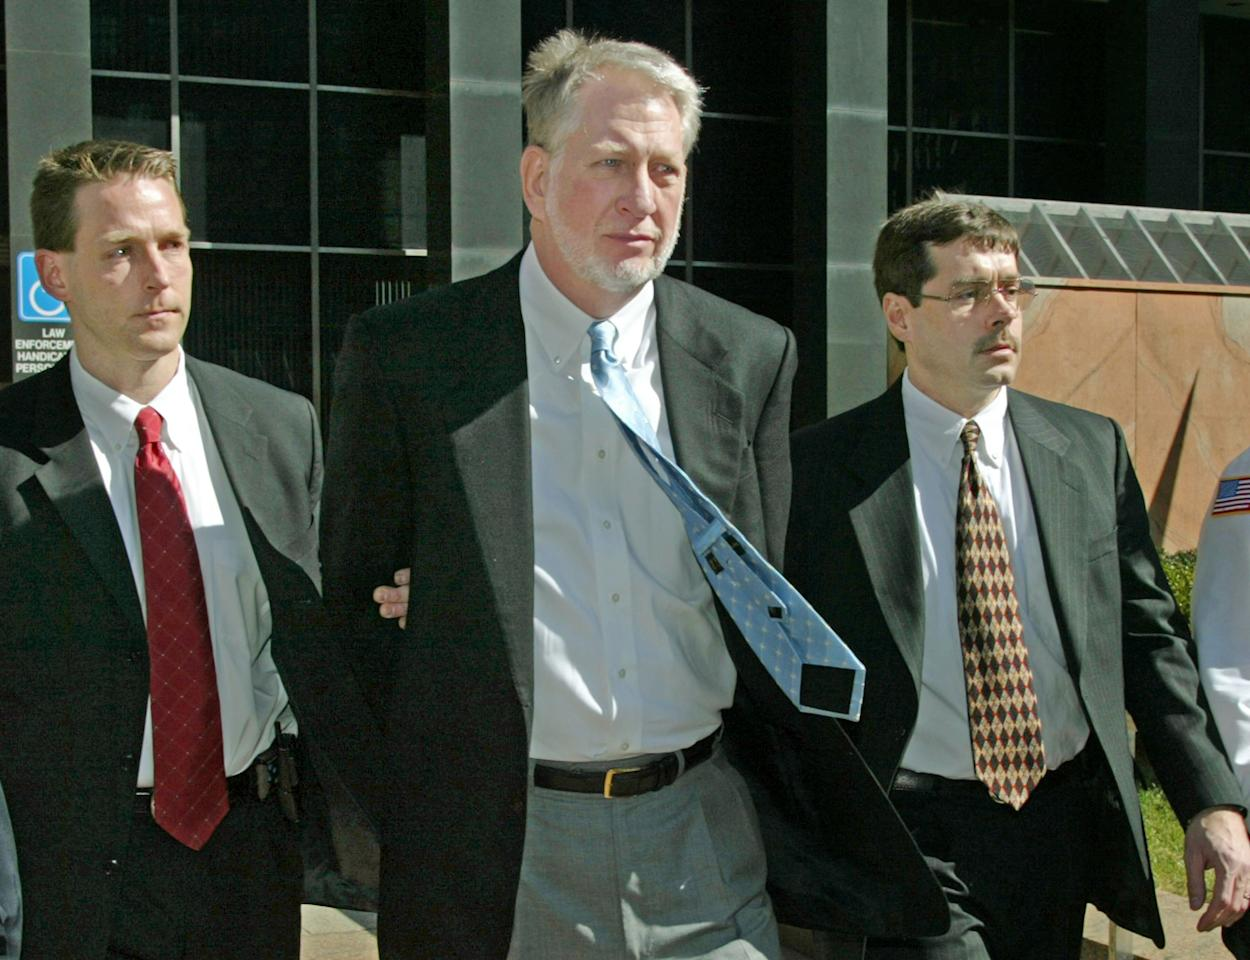 Bernie Ebbers is currently serving a 25-year sentence at the Oakdale Federal Correctional Institution in Louisiana. The former WorldCom CEO was convicted in 2005 of conspiracy, securities fraud and filing false documents with regulators after his involvement in an $11 billion fraud within the company. Photo: Former WorldCom executive Bernie Ebbers, center, leaves the federal building for an arraignment in custody March 3, 2004 in New York City.